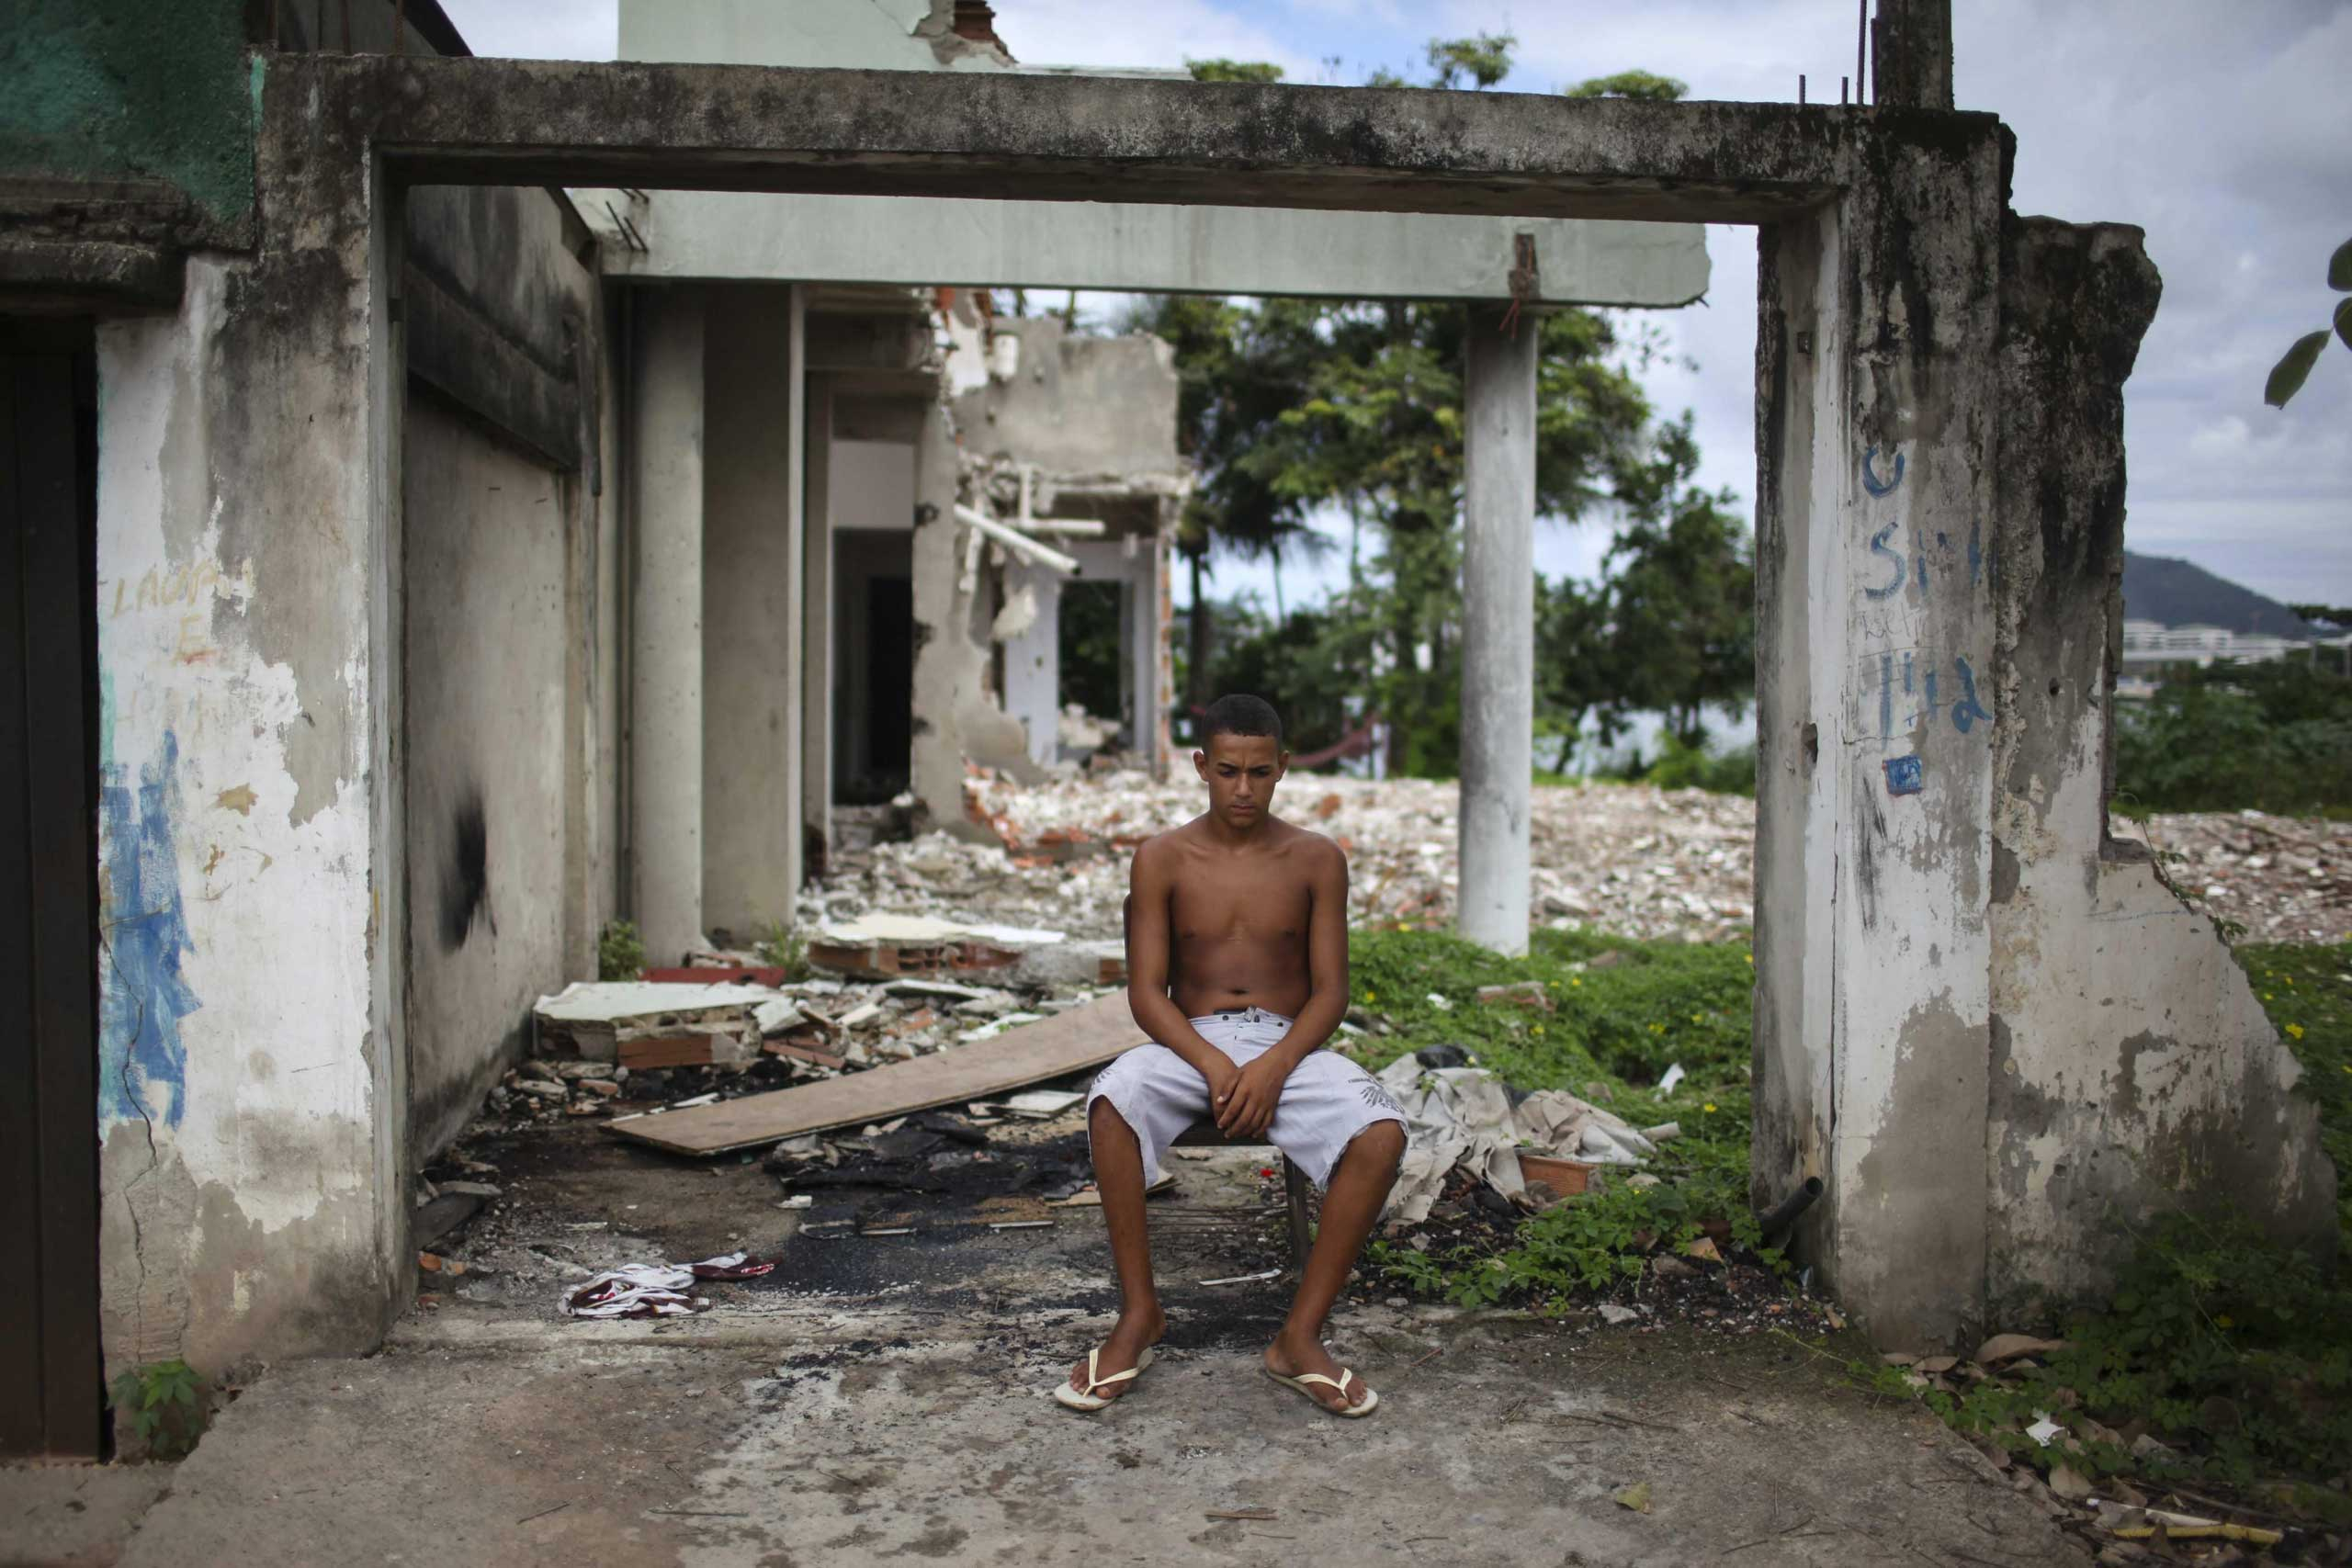 A young man rests next to a destroyed house at the shanty town Vila Autodromo, which is located close to the Olympic Park built for the Olympic Games Rio 2016, in Rio de Janeiro, Brazil, on 01 April 2015.